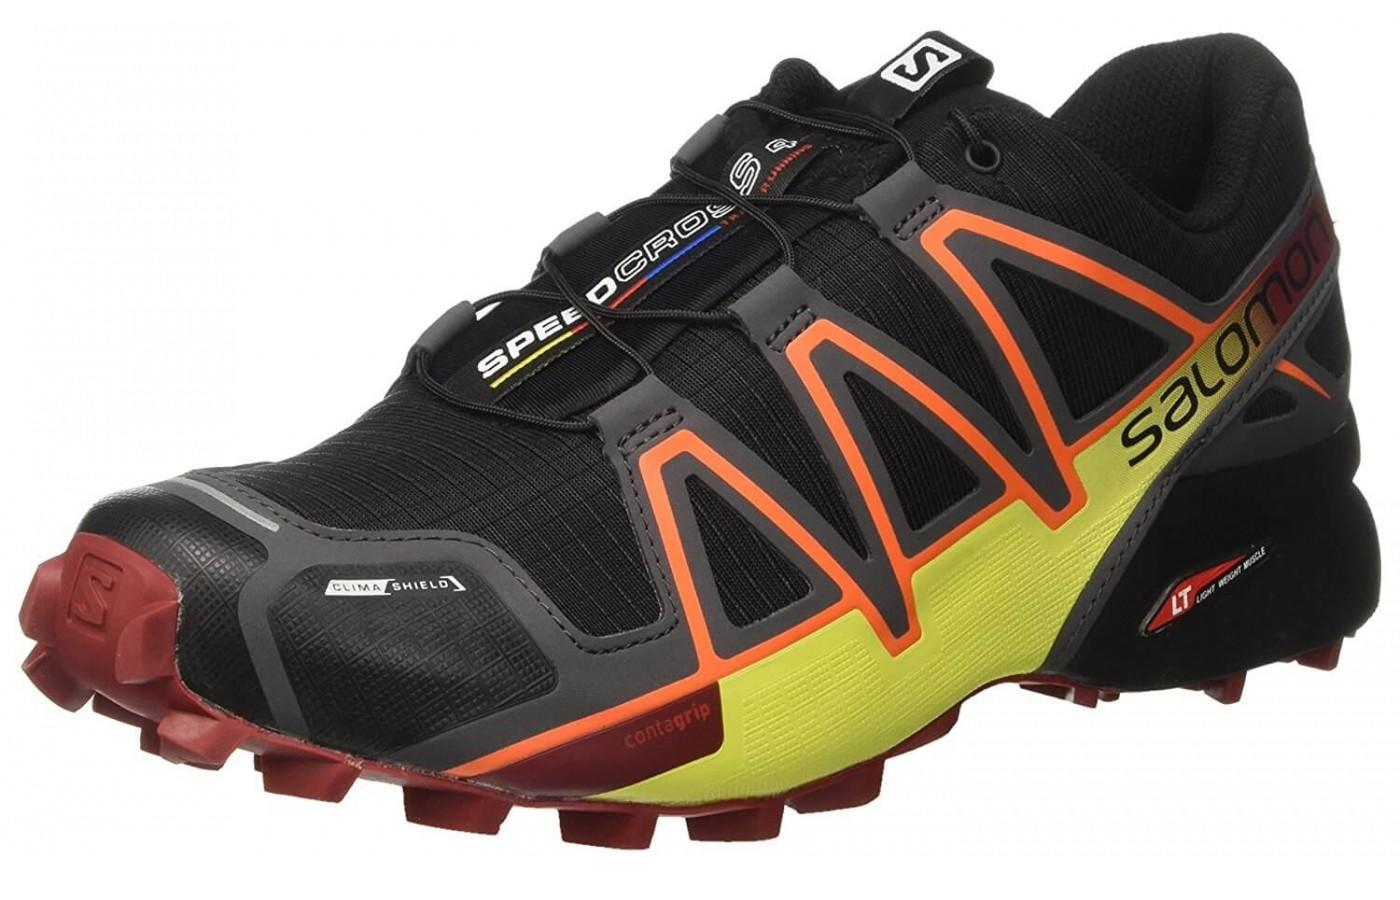 8a2ea9de271f16 Salomon Speedcross 4 CS - To Buy or Not in July 2019?